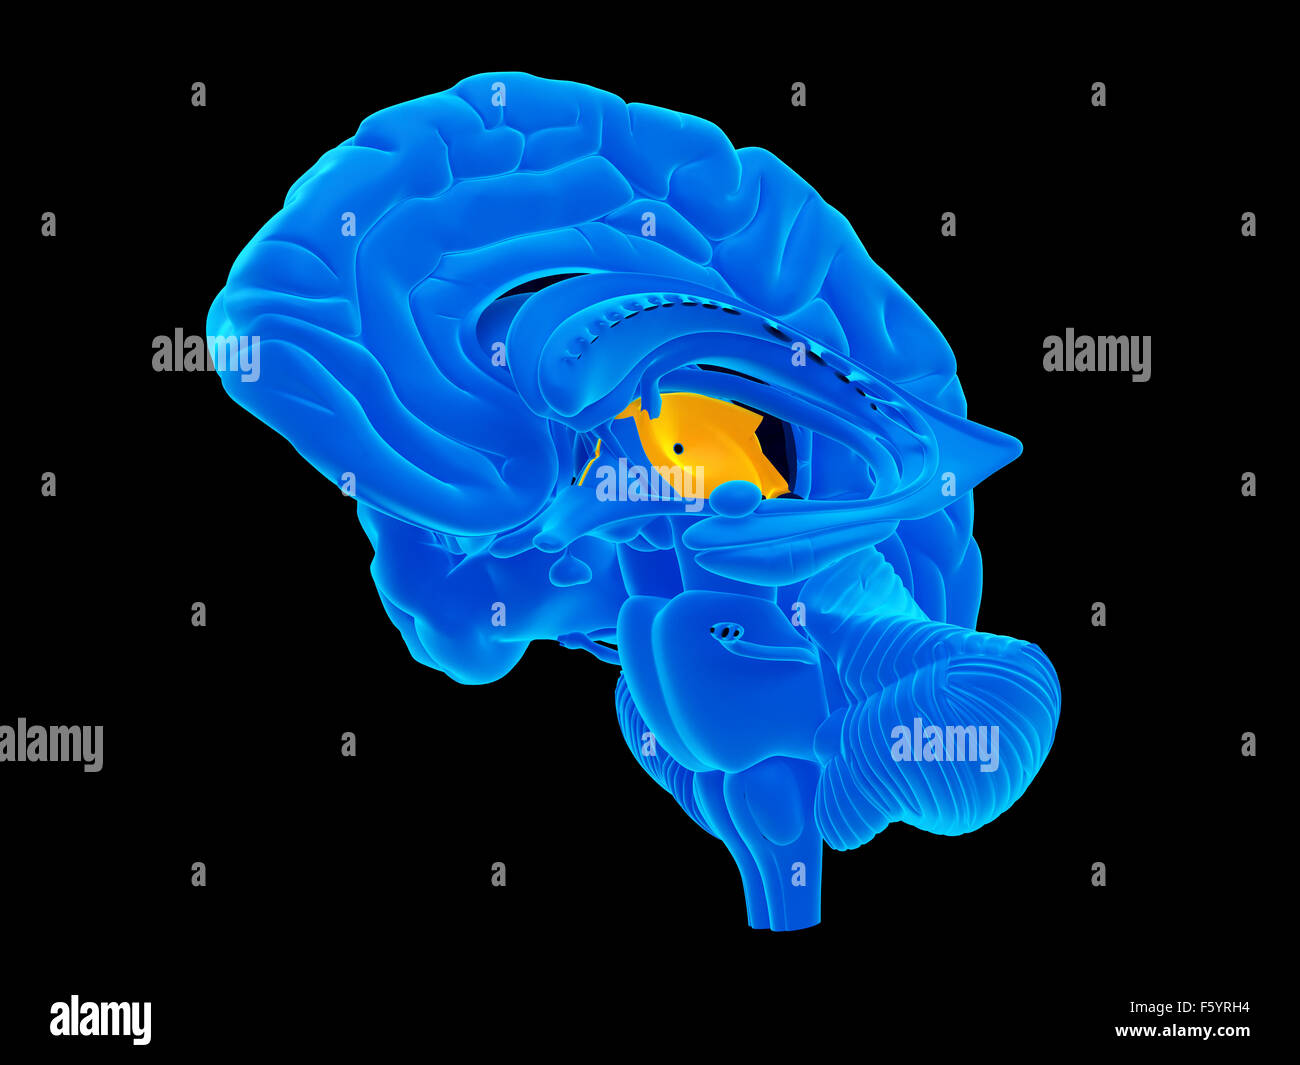 medically accurate illustration of the thalamus - Stock Image